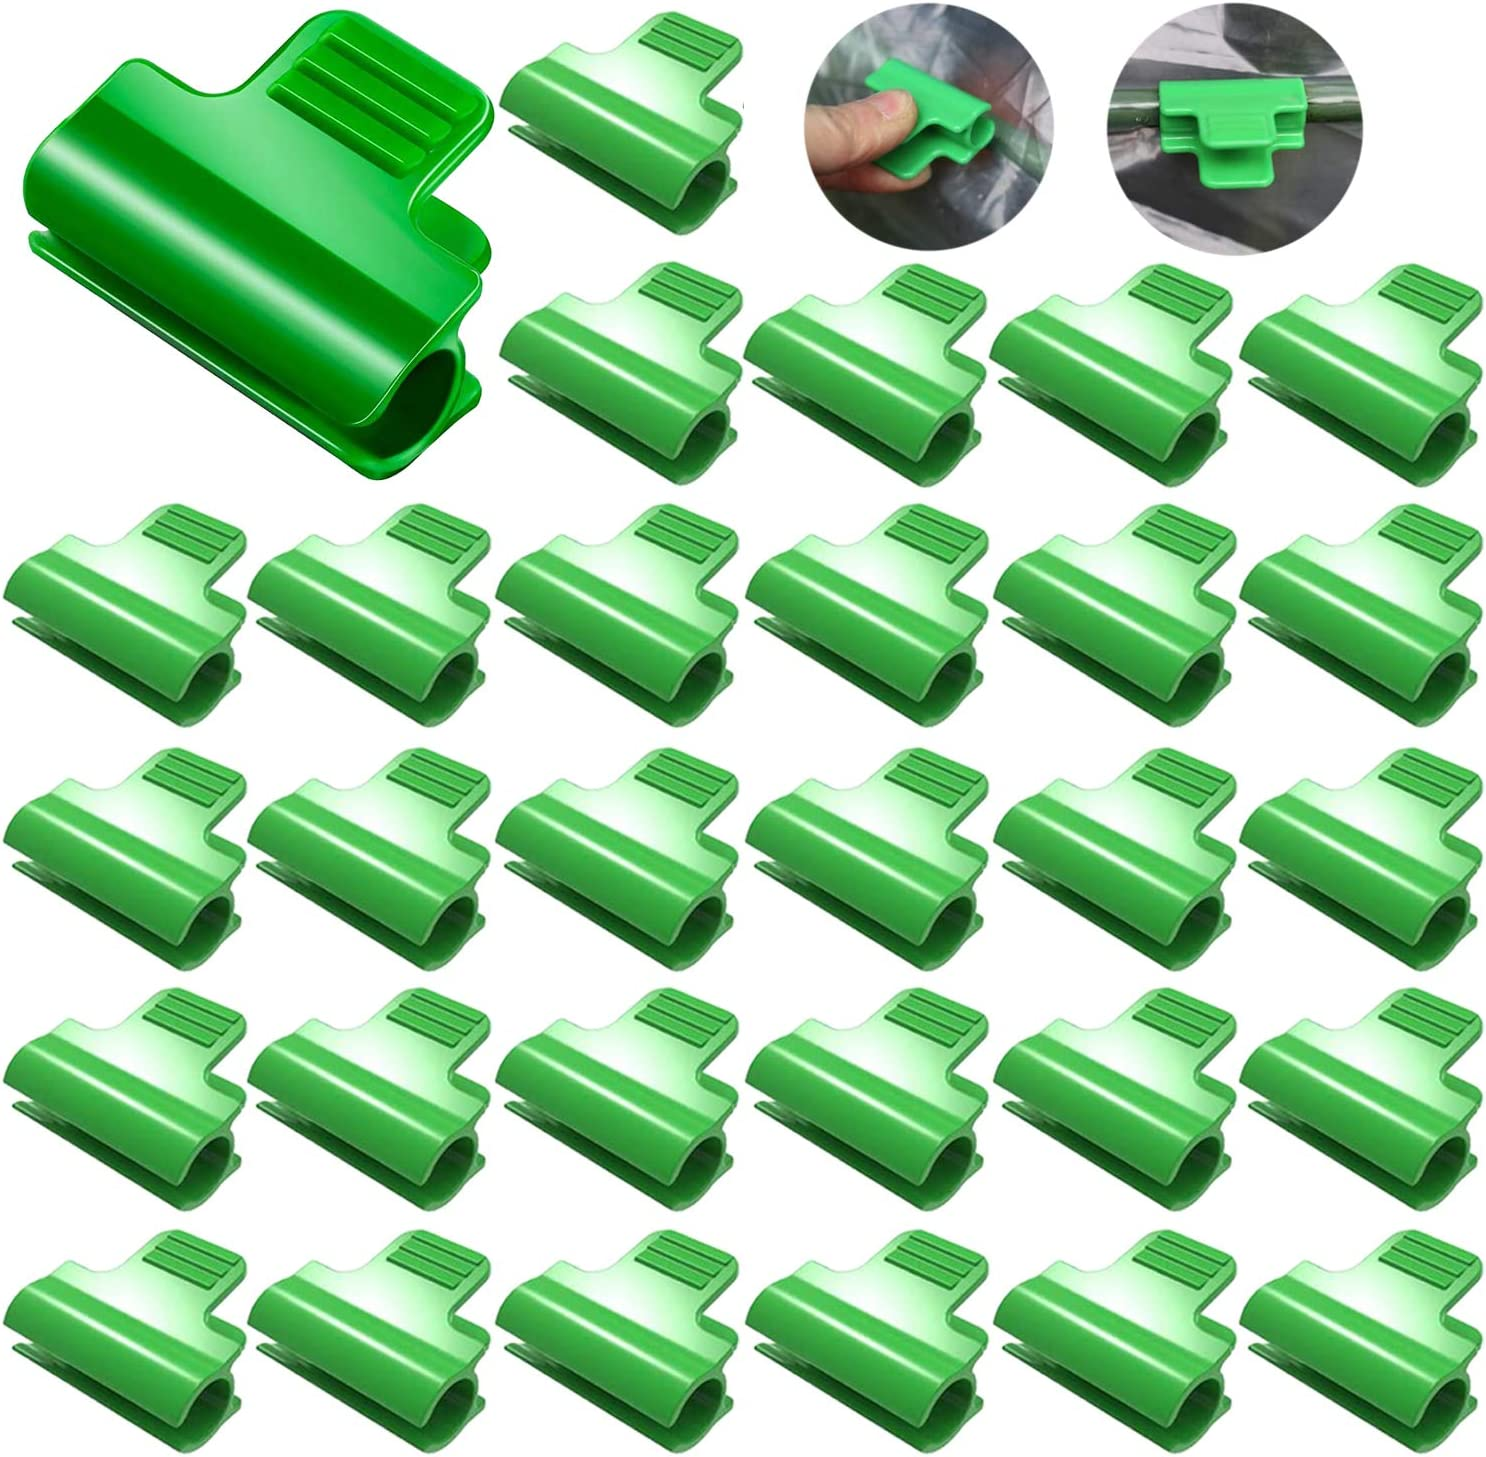 30 Pieces Greenhouse Clamps Film Row Cover Netting Tunnel Hoop Clip Frame Shading Net Rod Clip Greenhouse Film Clamps for Season Plant Extension Support, 11 mm/ 0.43 Inch